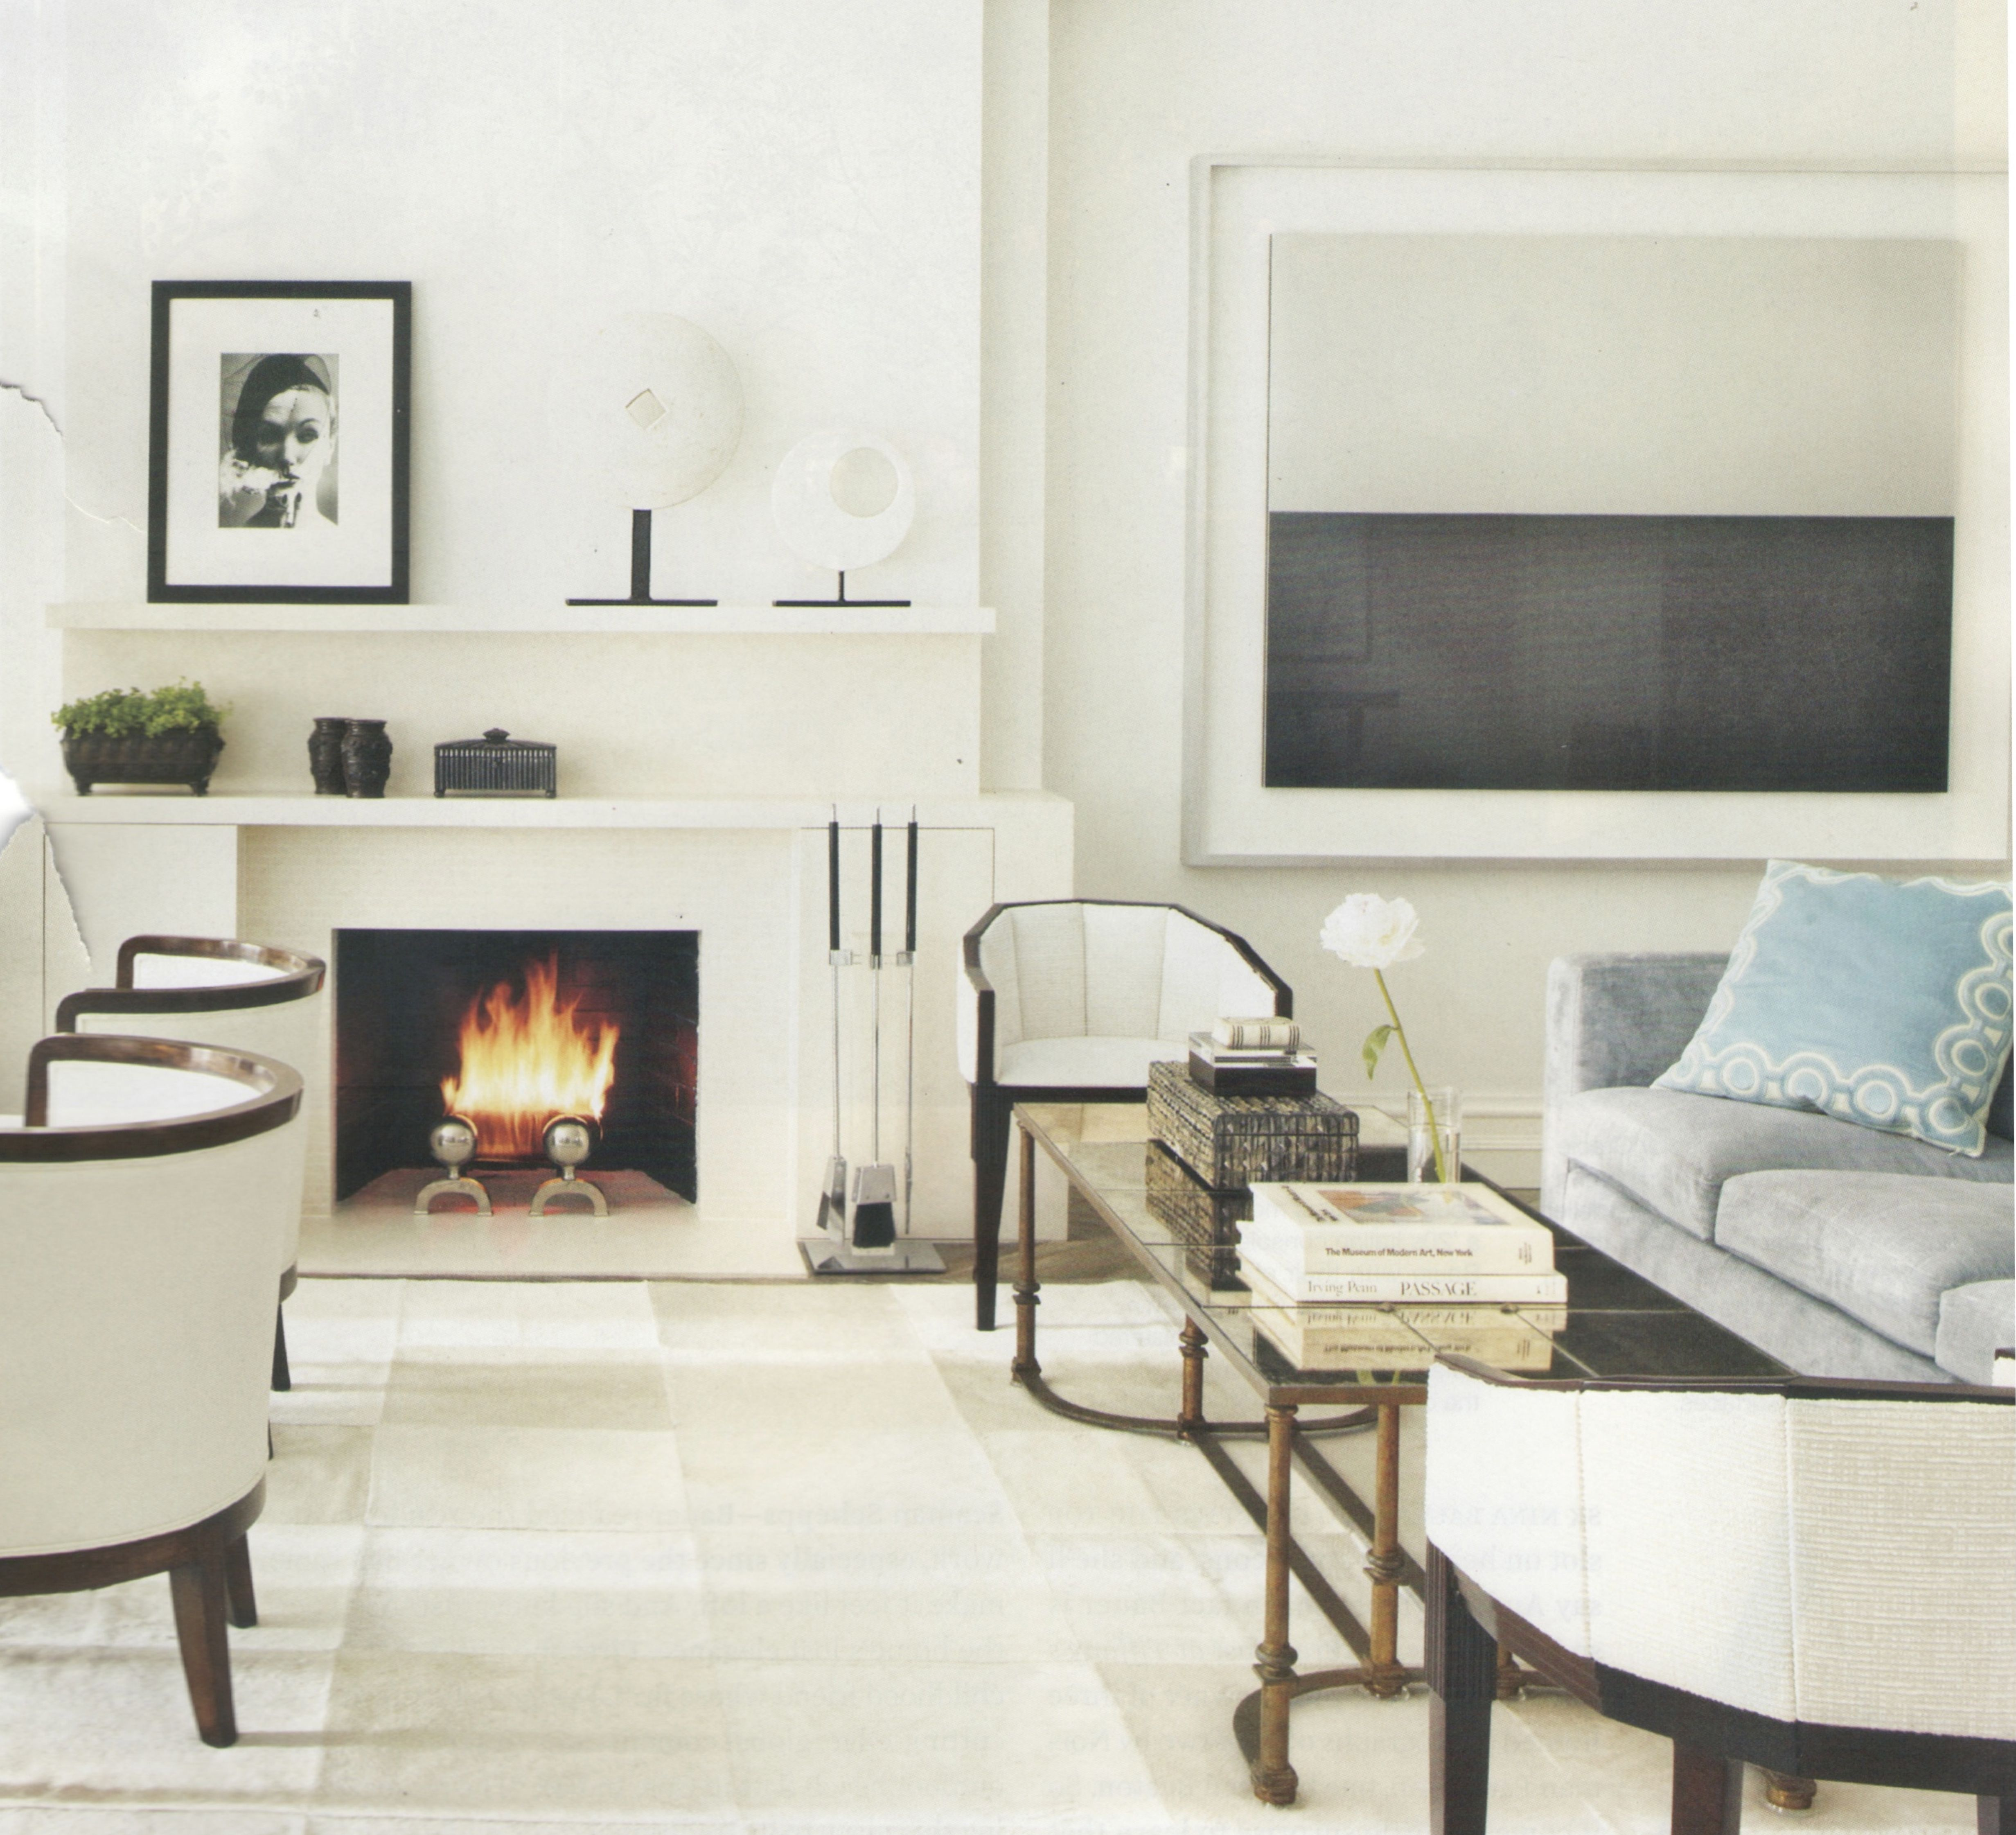 Best Fireplace May 2011 Architectural Digest Contemporary 400 x 300